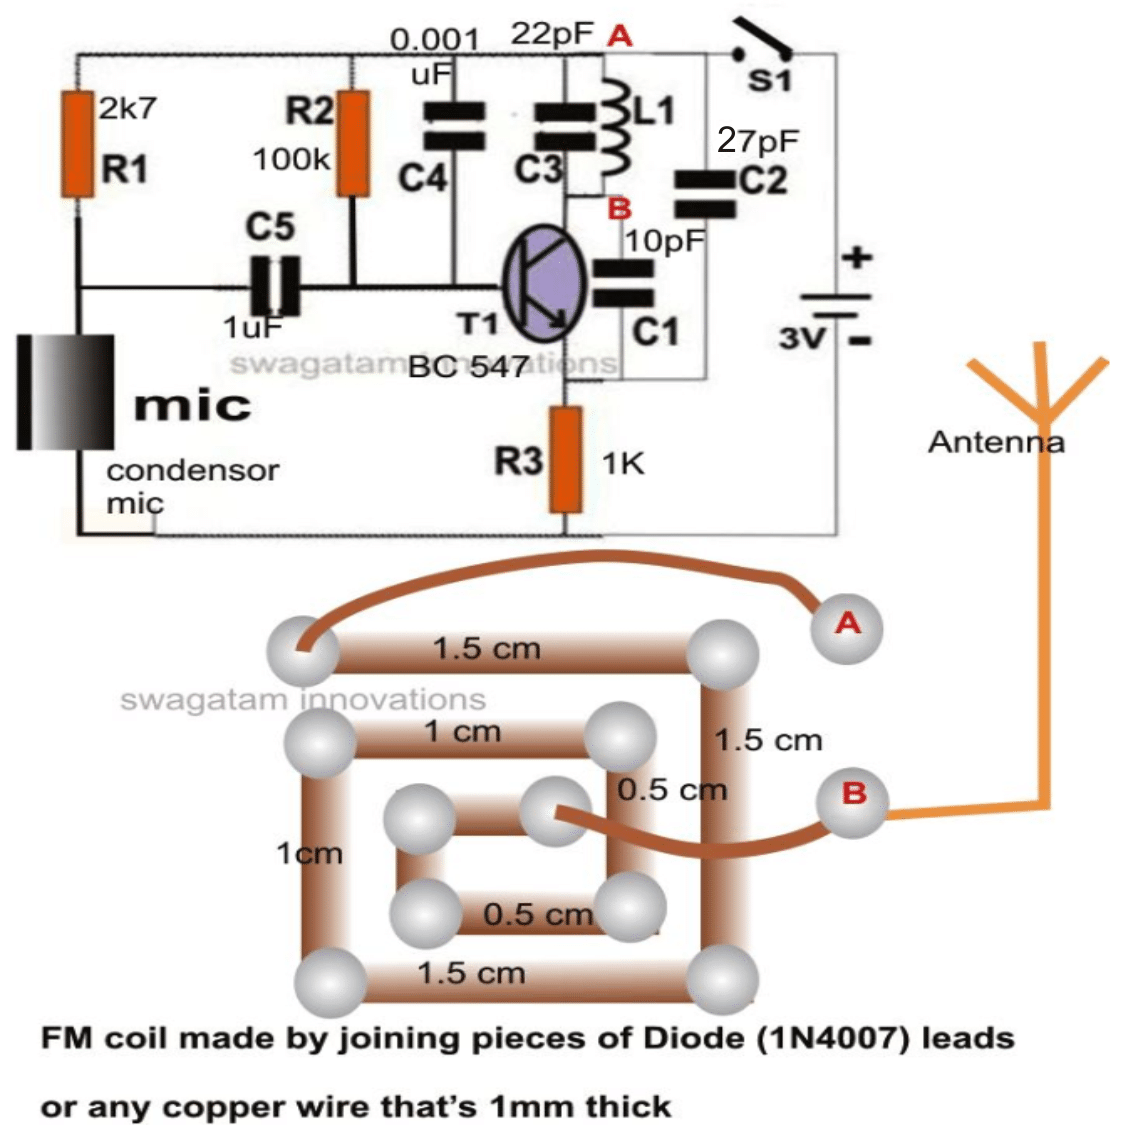 fm wireless microphone circuit diagram 1984 honda spree wiring design and functioning homemade